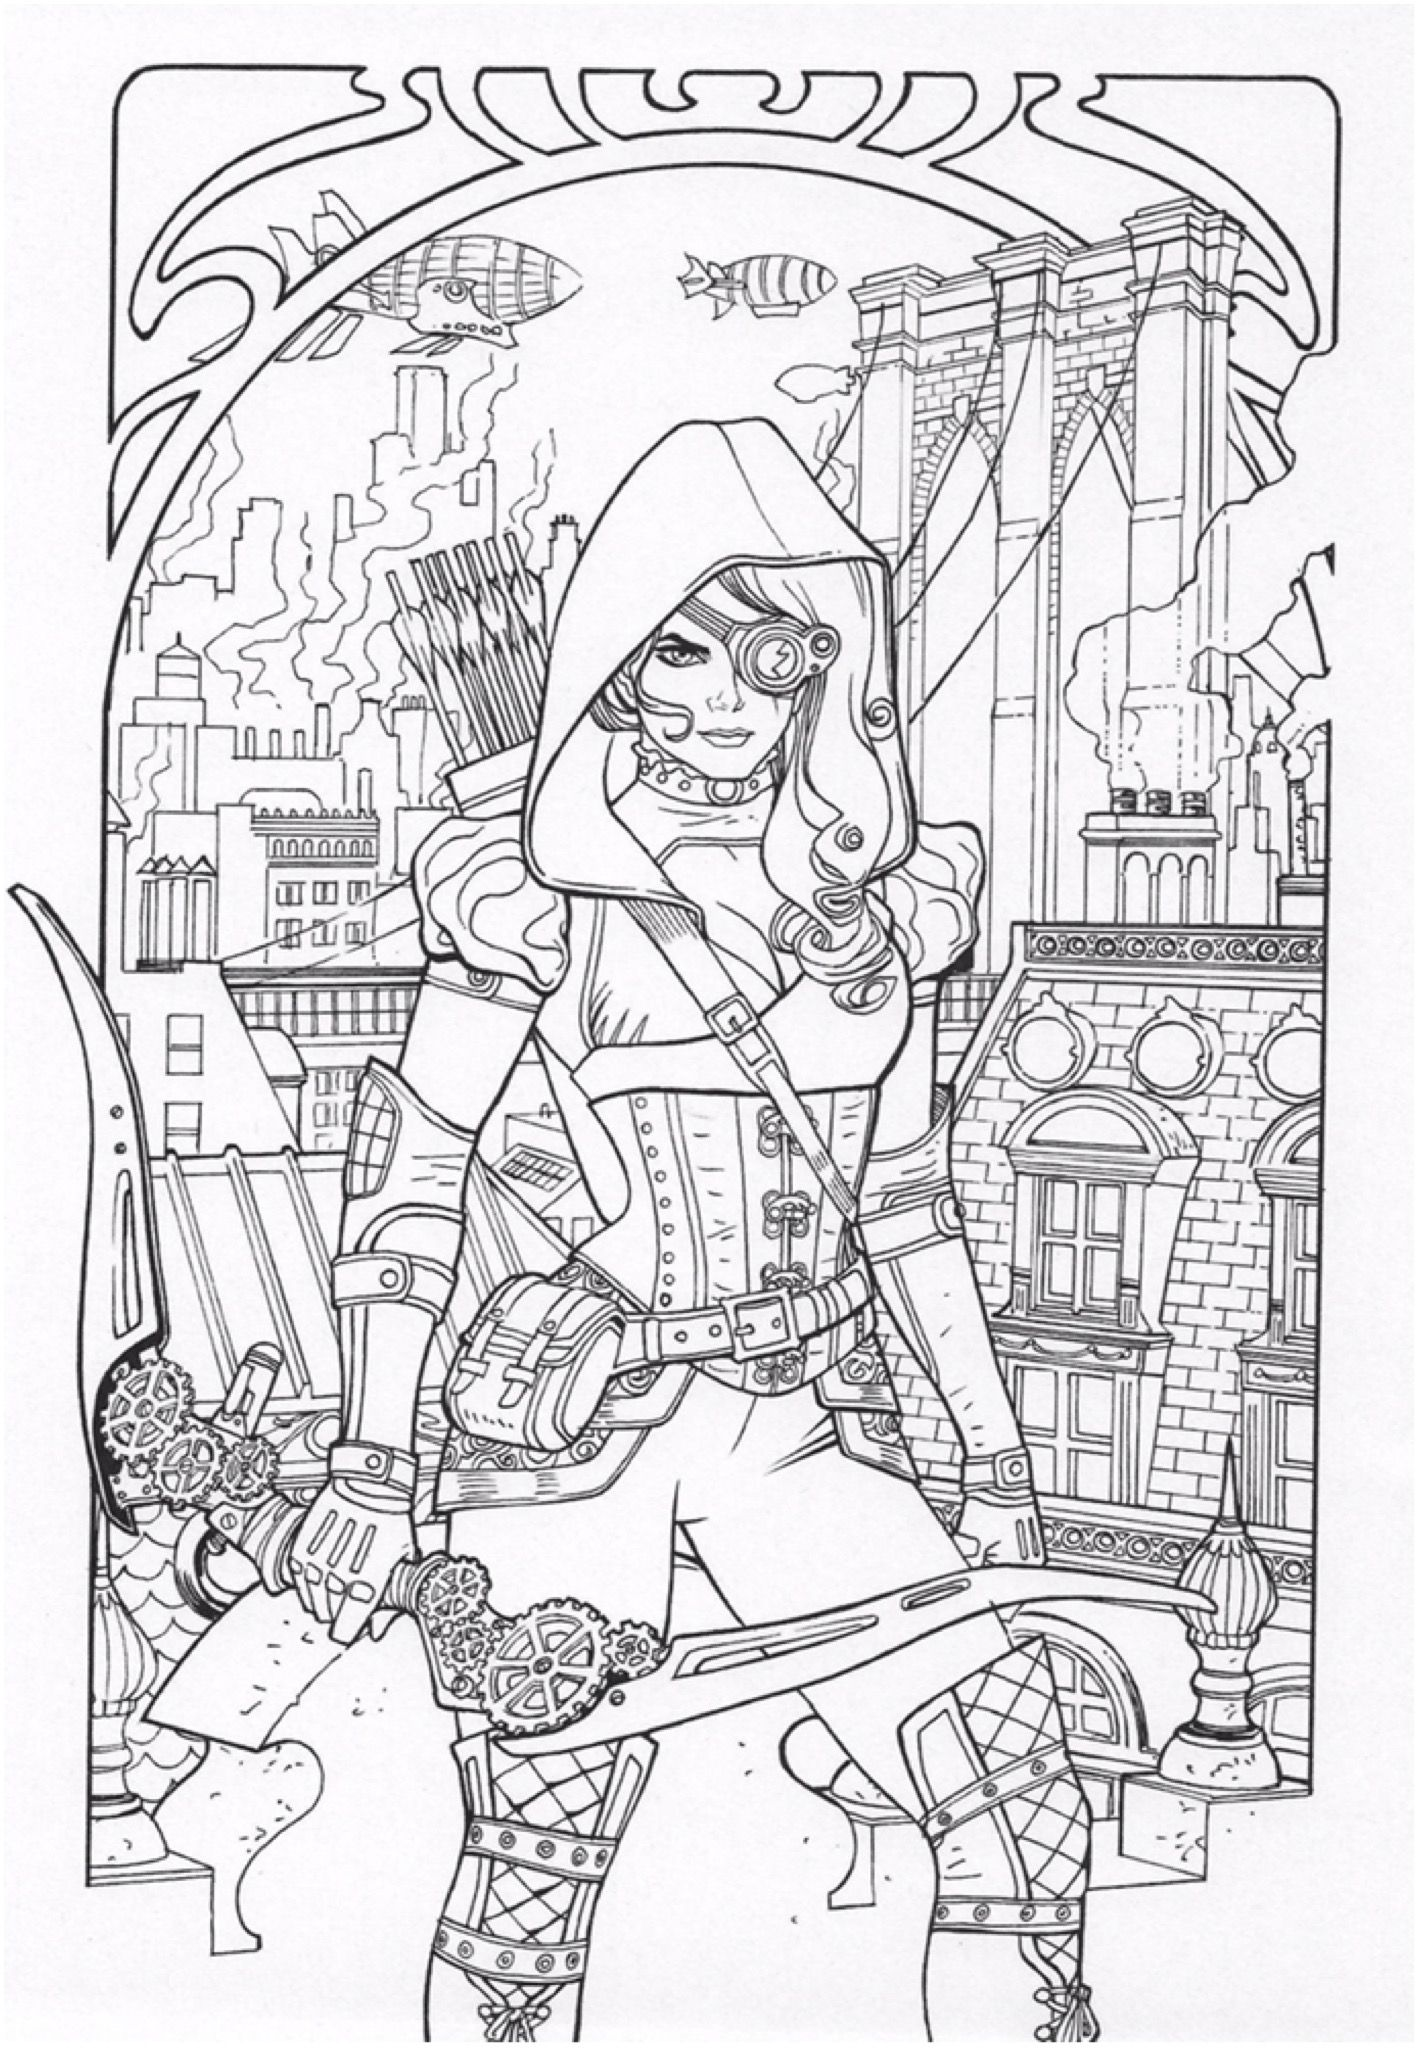 Steampunk coloring page Adult coloring book pages, Adult